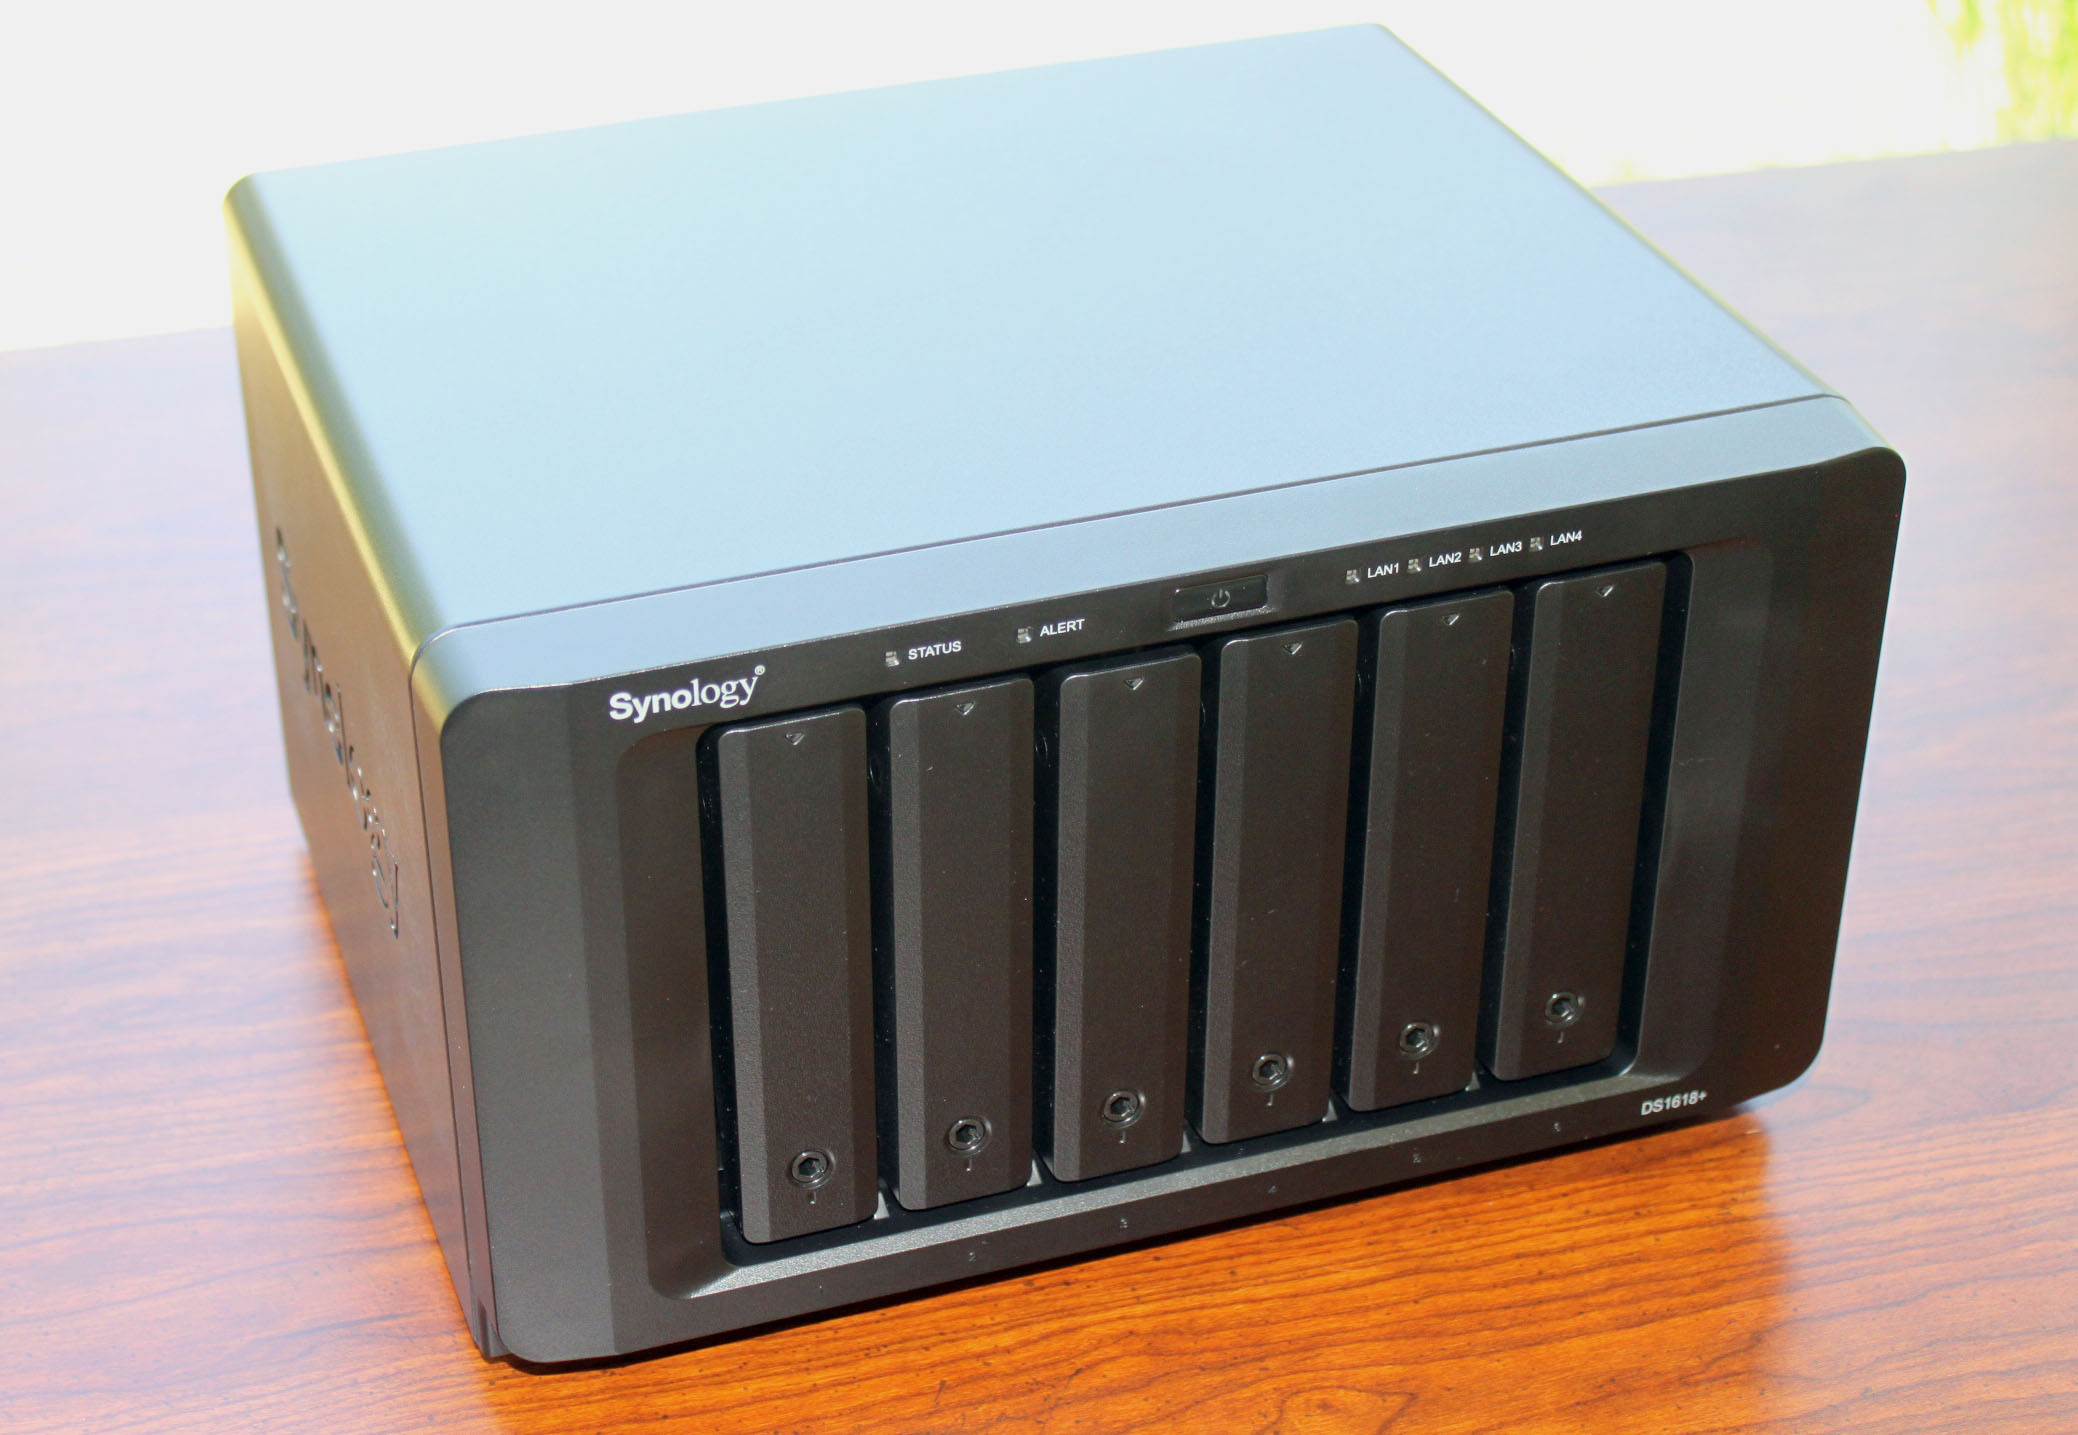 The Synology DiskStation DS1618+: When The Great Gets An Upgrade